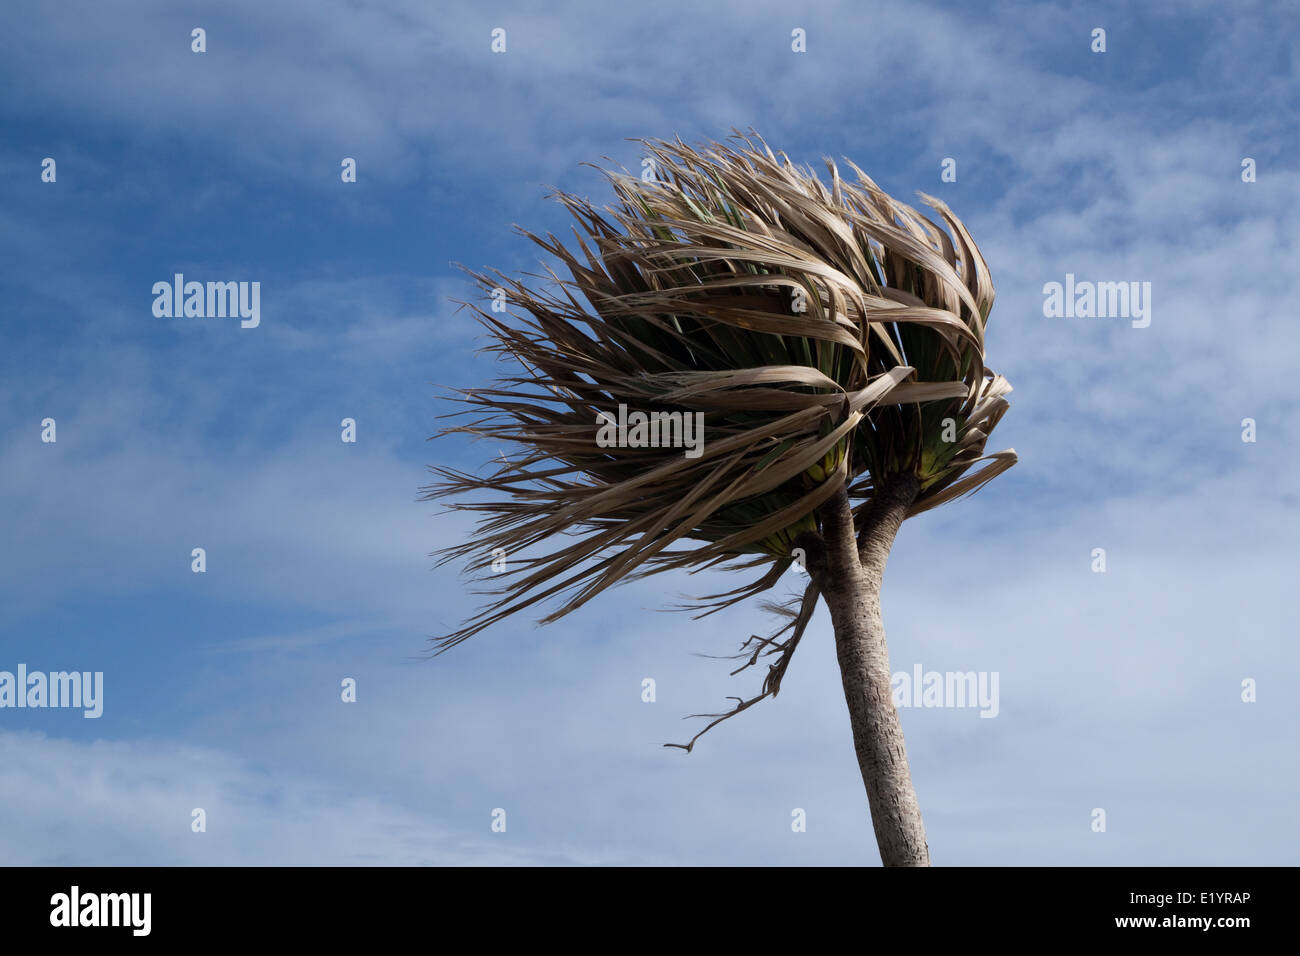 Palm Tree on a Very Windy Day - Isles of Scilly -1 - Stock Image